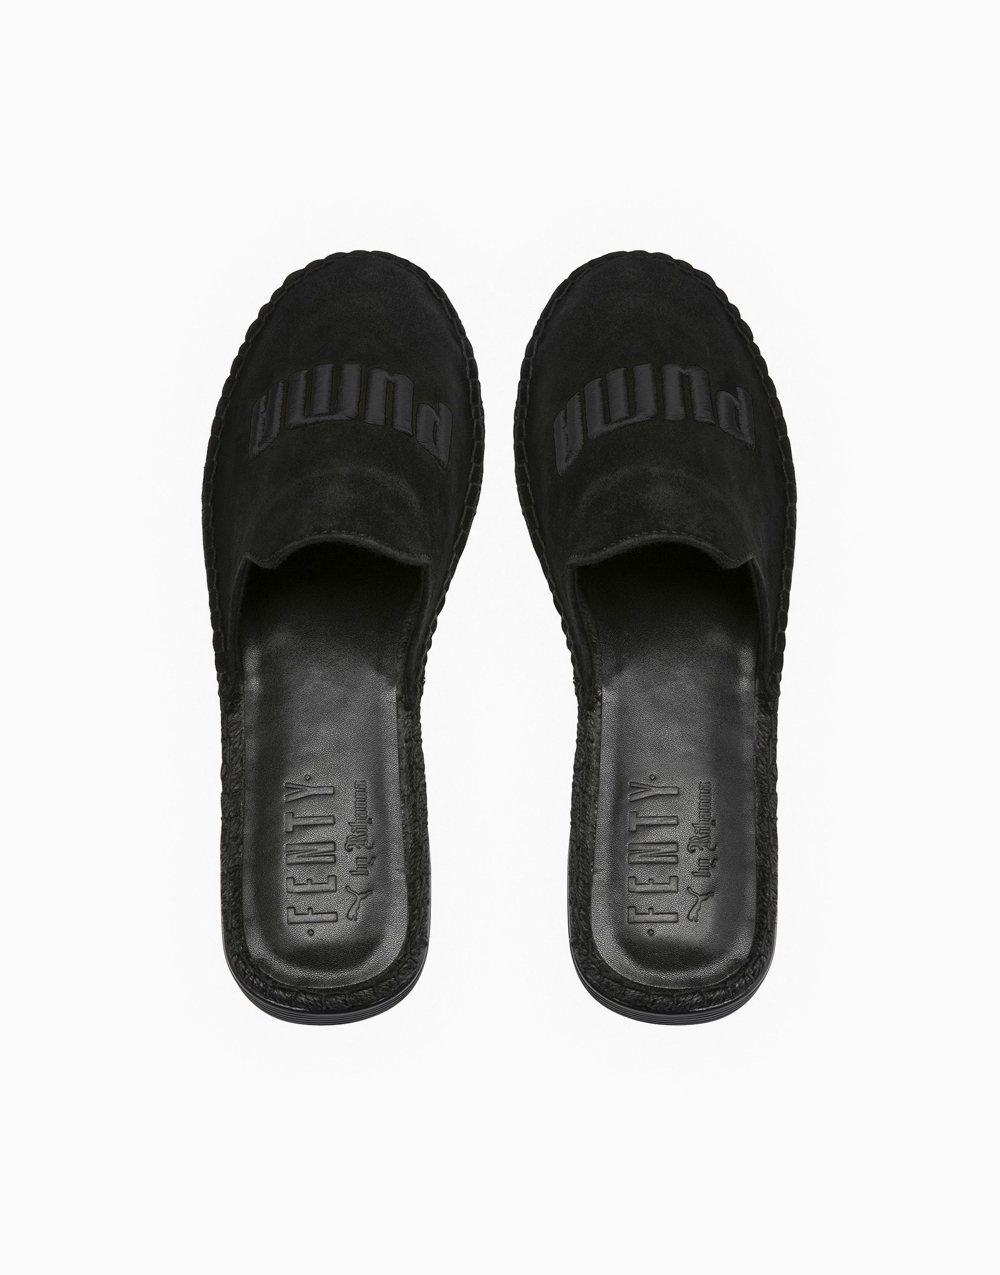 Fenty Espadrille in Black by Puma | US 8.5